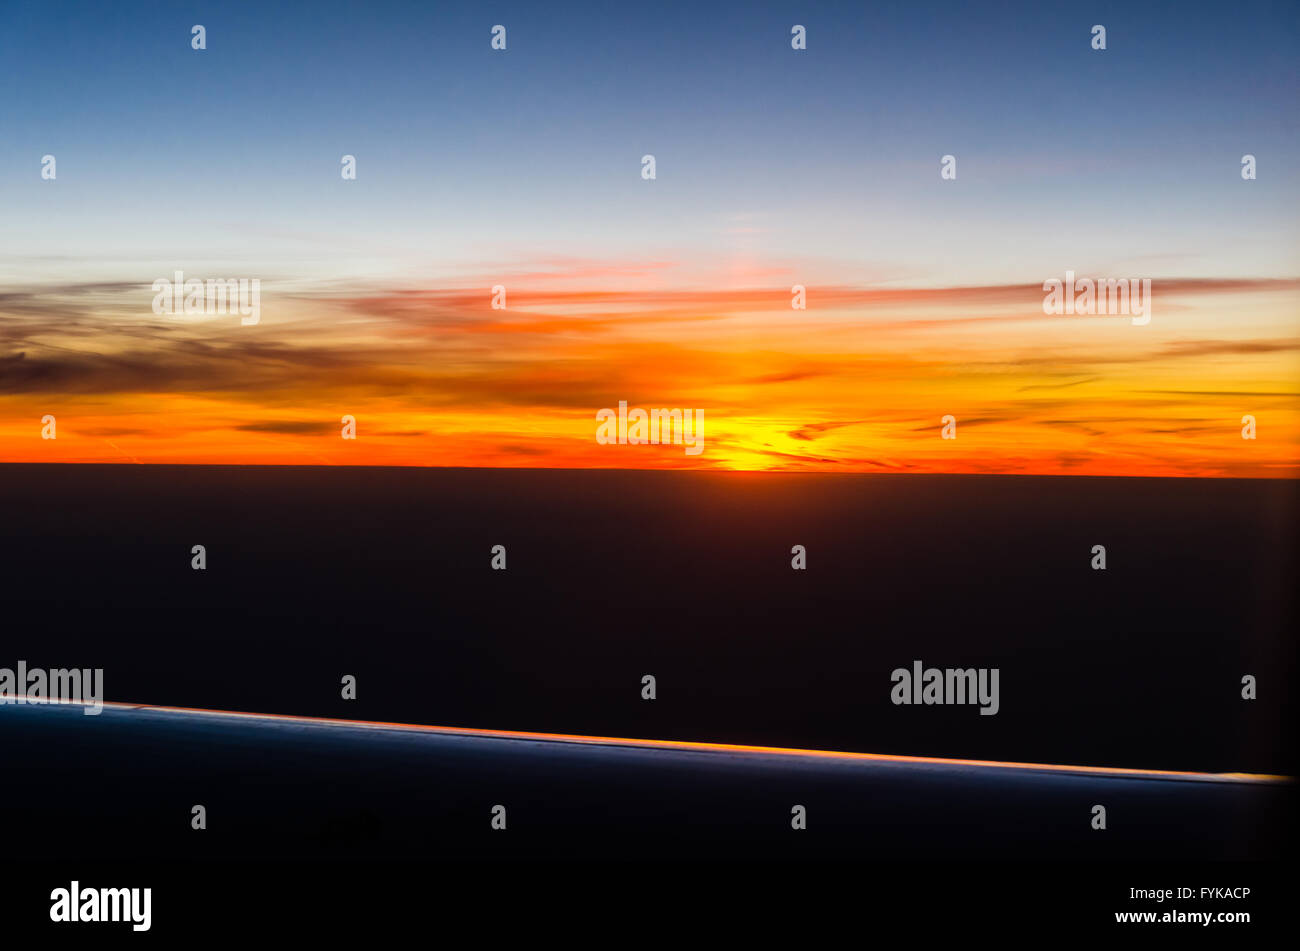 Sunset view from airplane - Stock Image